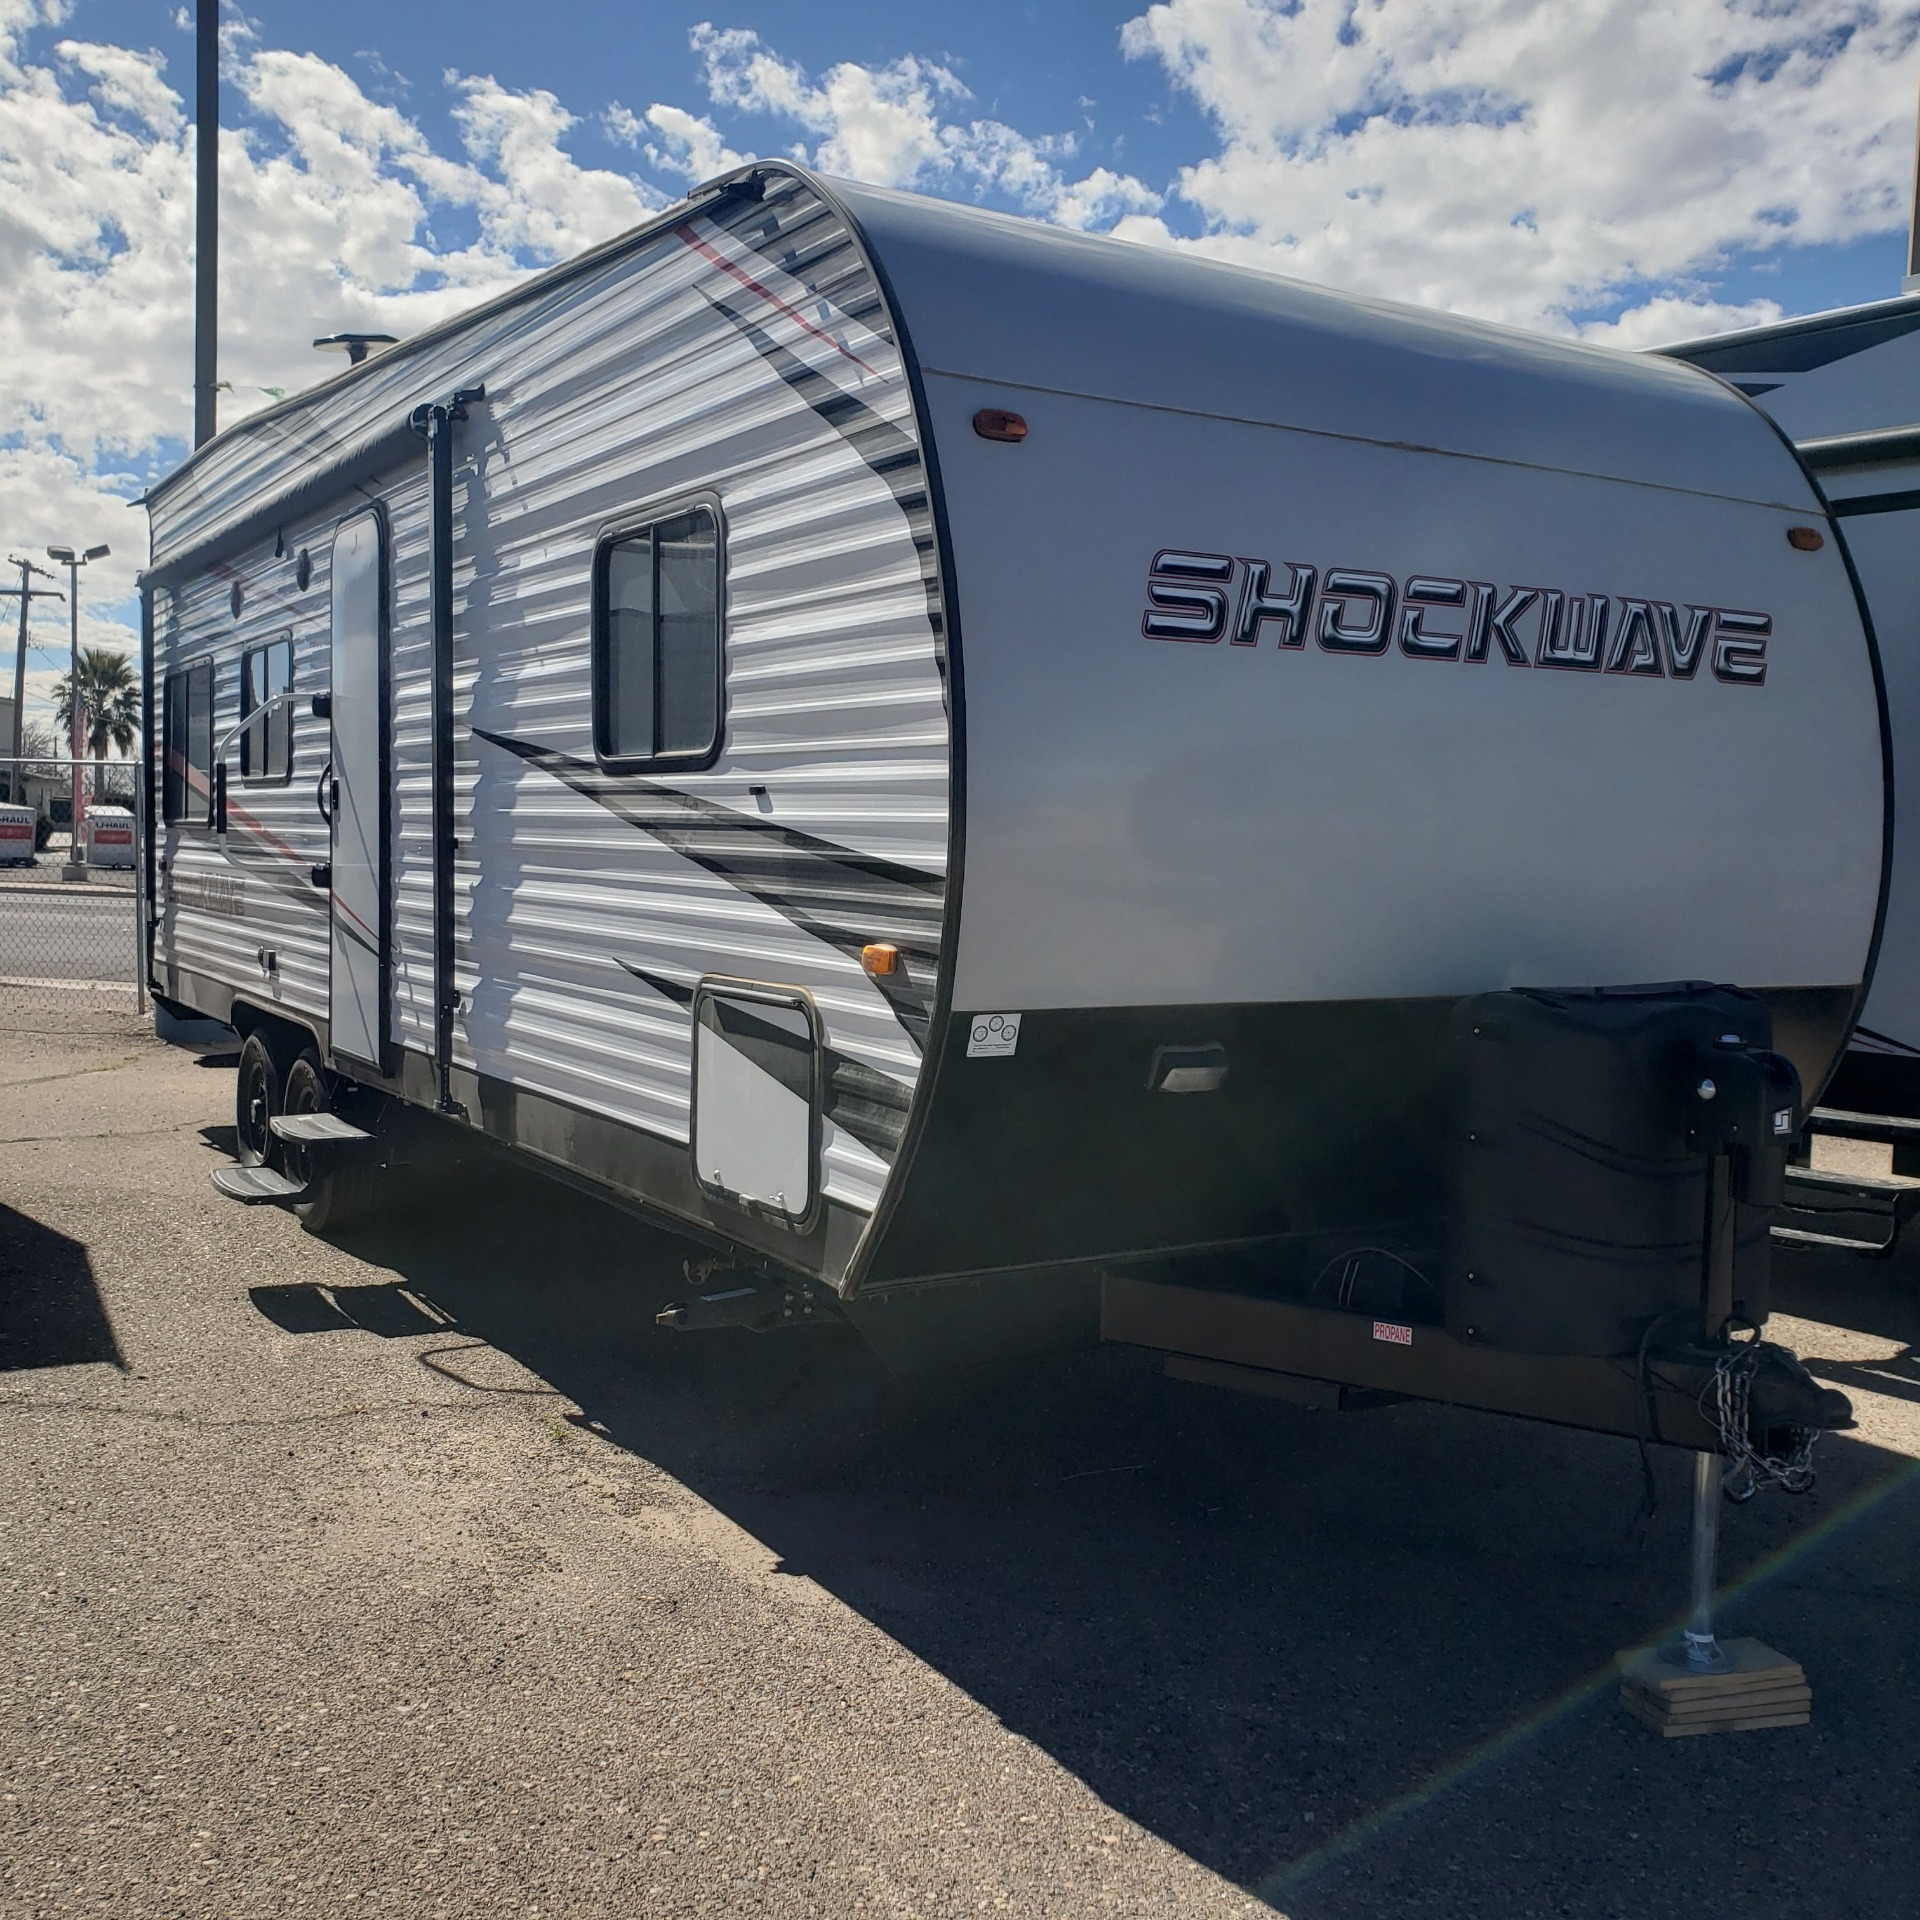 2019 FOREST RIVER SHOCKWAVE in Safford, Arizona - Photo 2